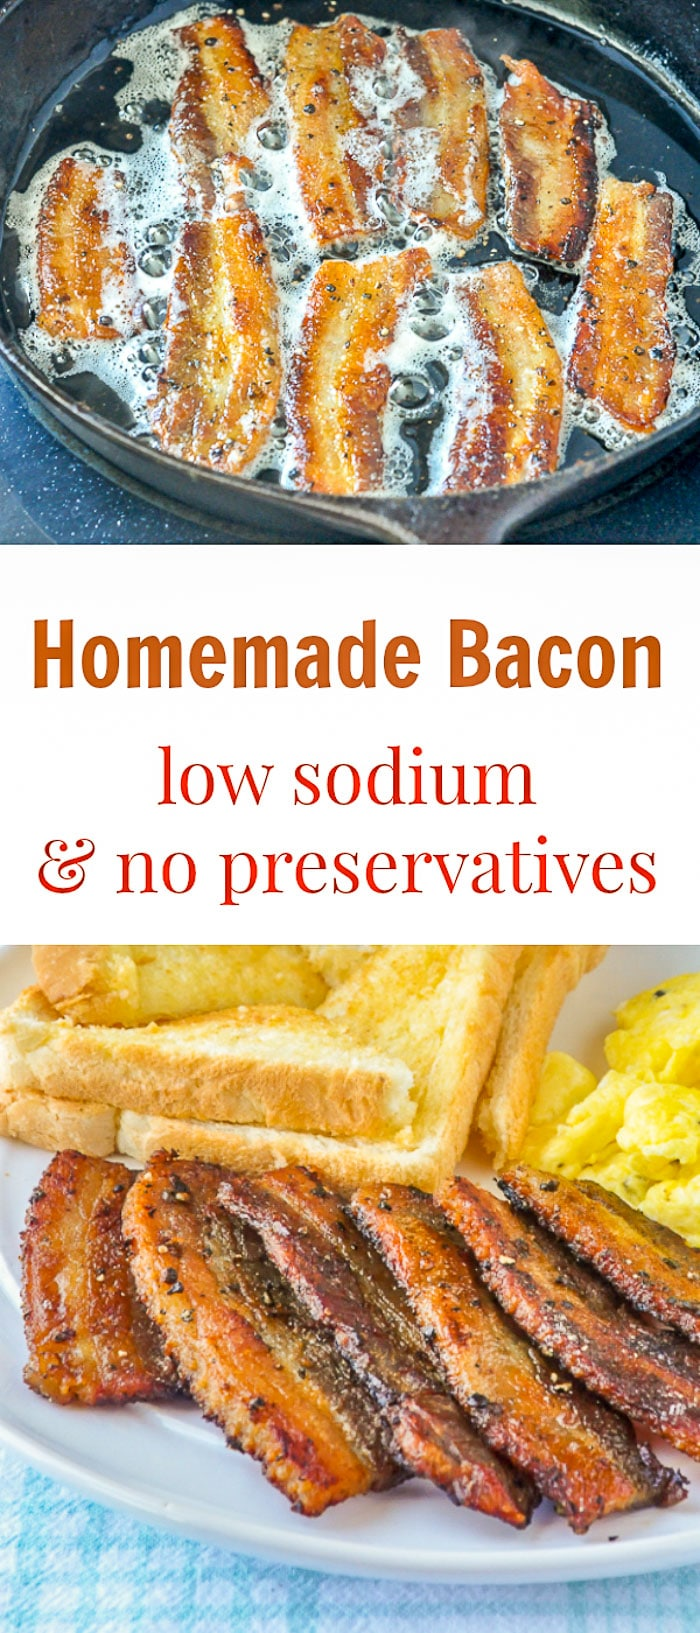 Homemade Bacon image with title text for Pinterest